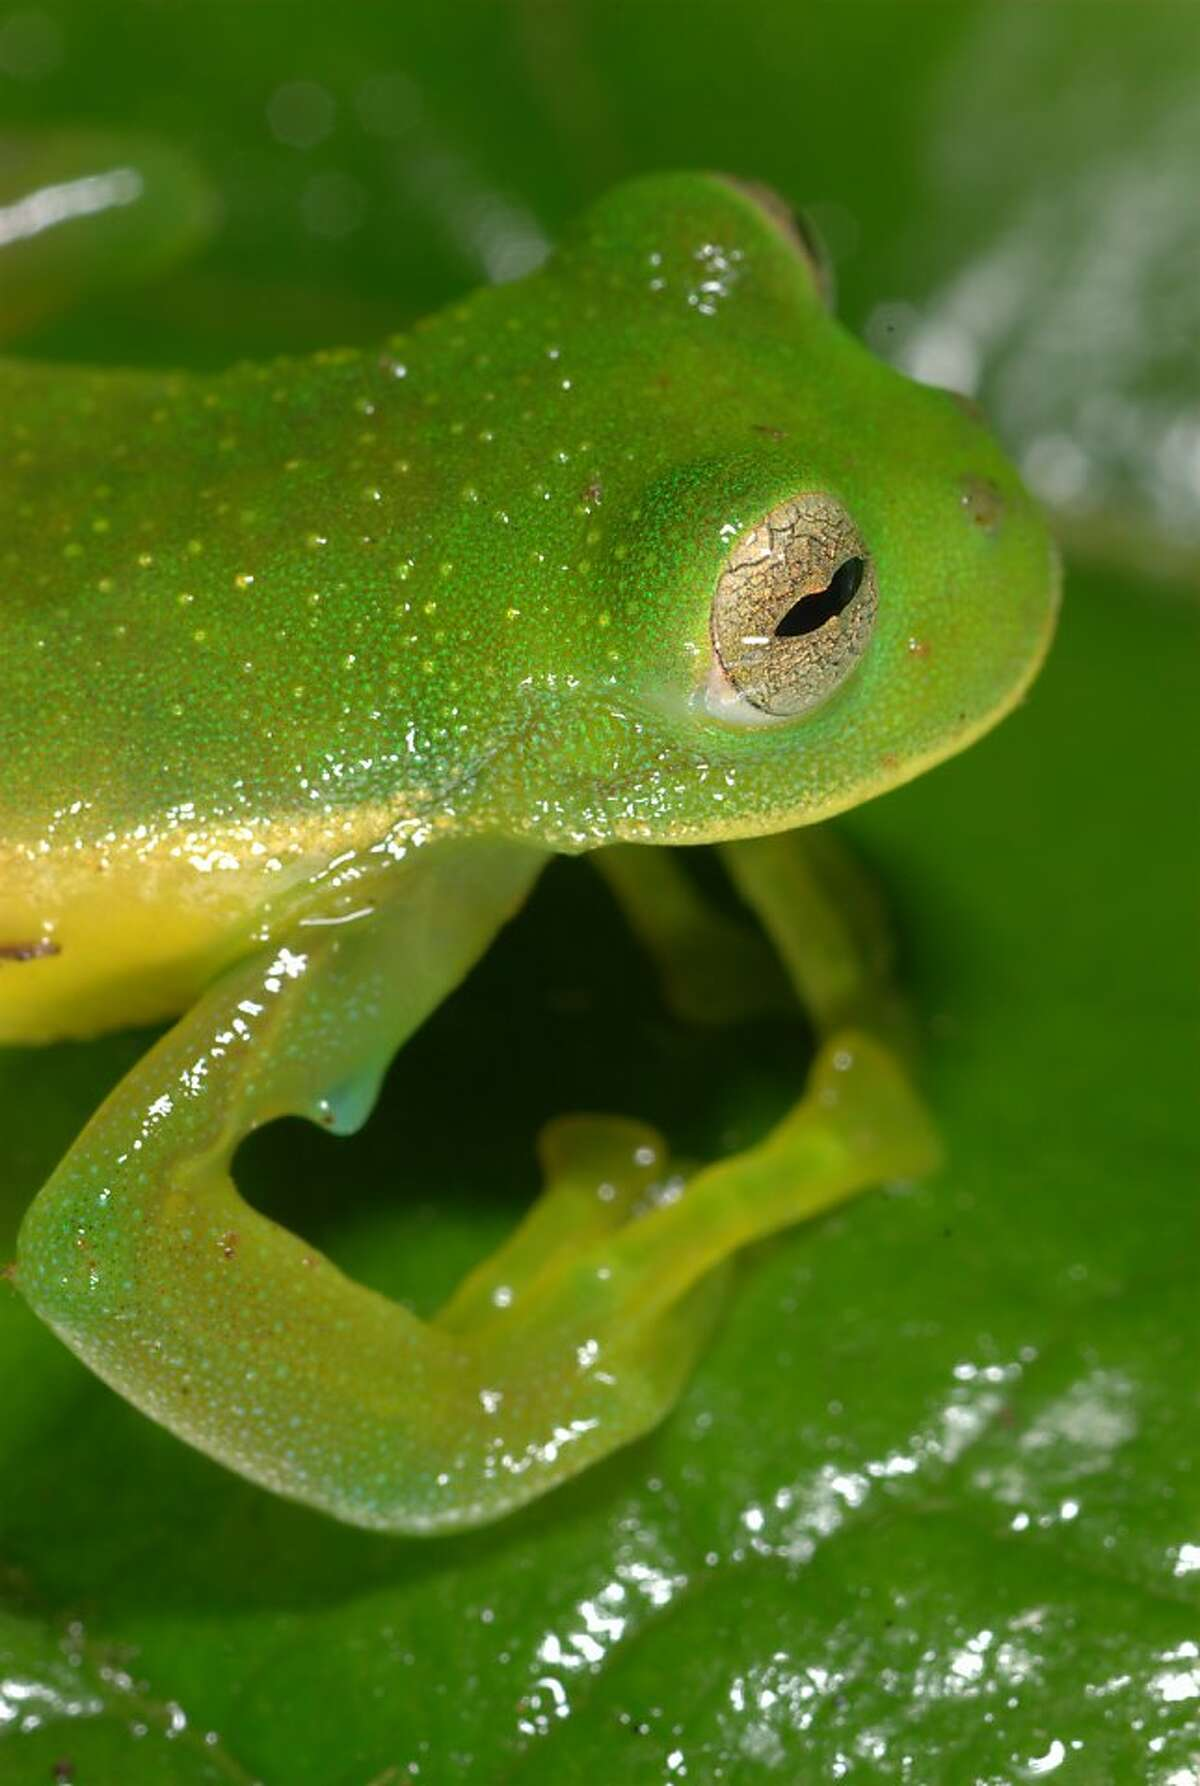 This new species of high-altitude glass frog, Centrolene sabini, in the amphibian family of Centrolnidae, was discovered by Allessandro Catenazzi in the cloud forest of Peru's Manu National Park at an elevation of nearly 10,000 feet. This Peruvian glass frog tadpole, Centrolene sabini, was hatched from eggs laid on the surface of a leafin Peru's Manu National Park..